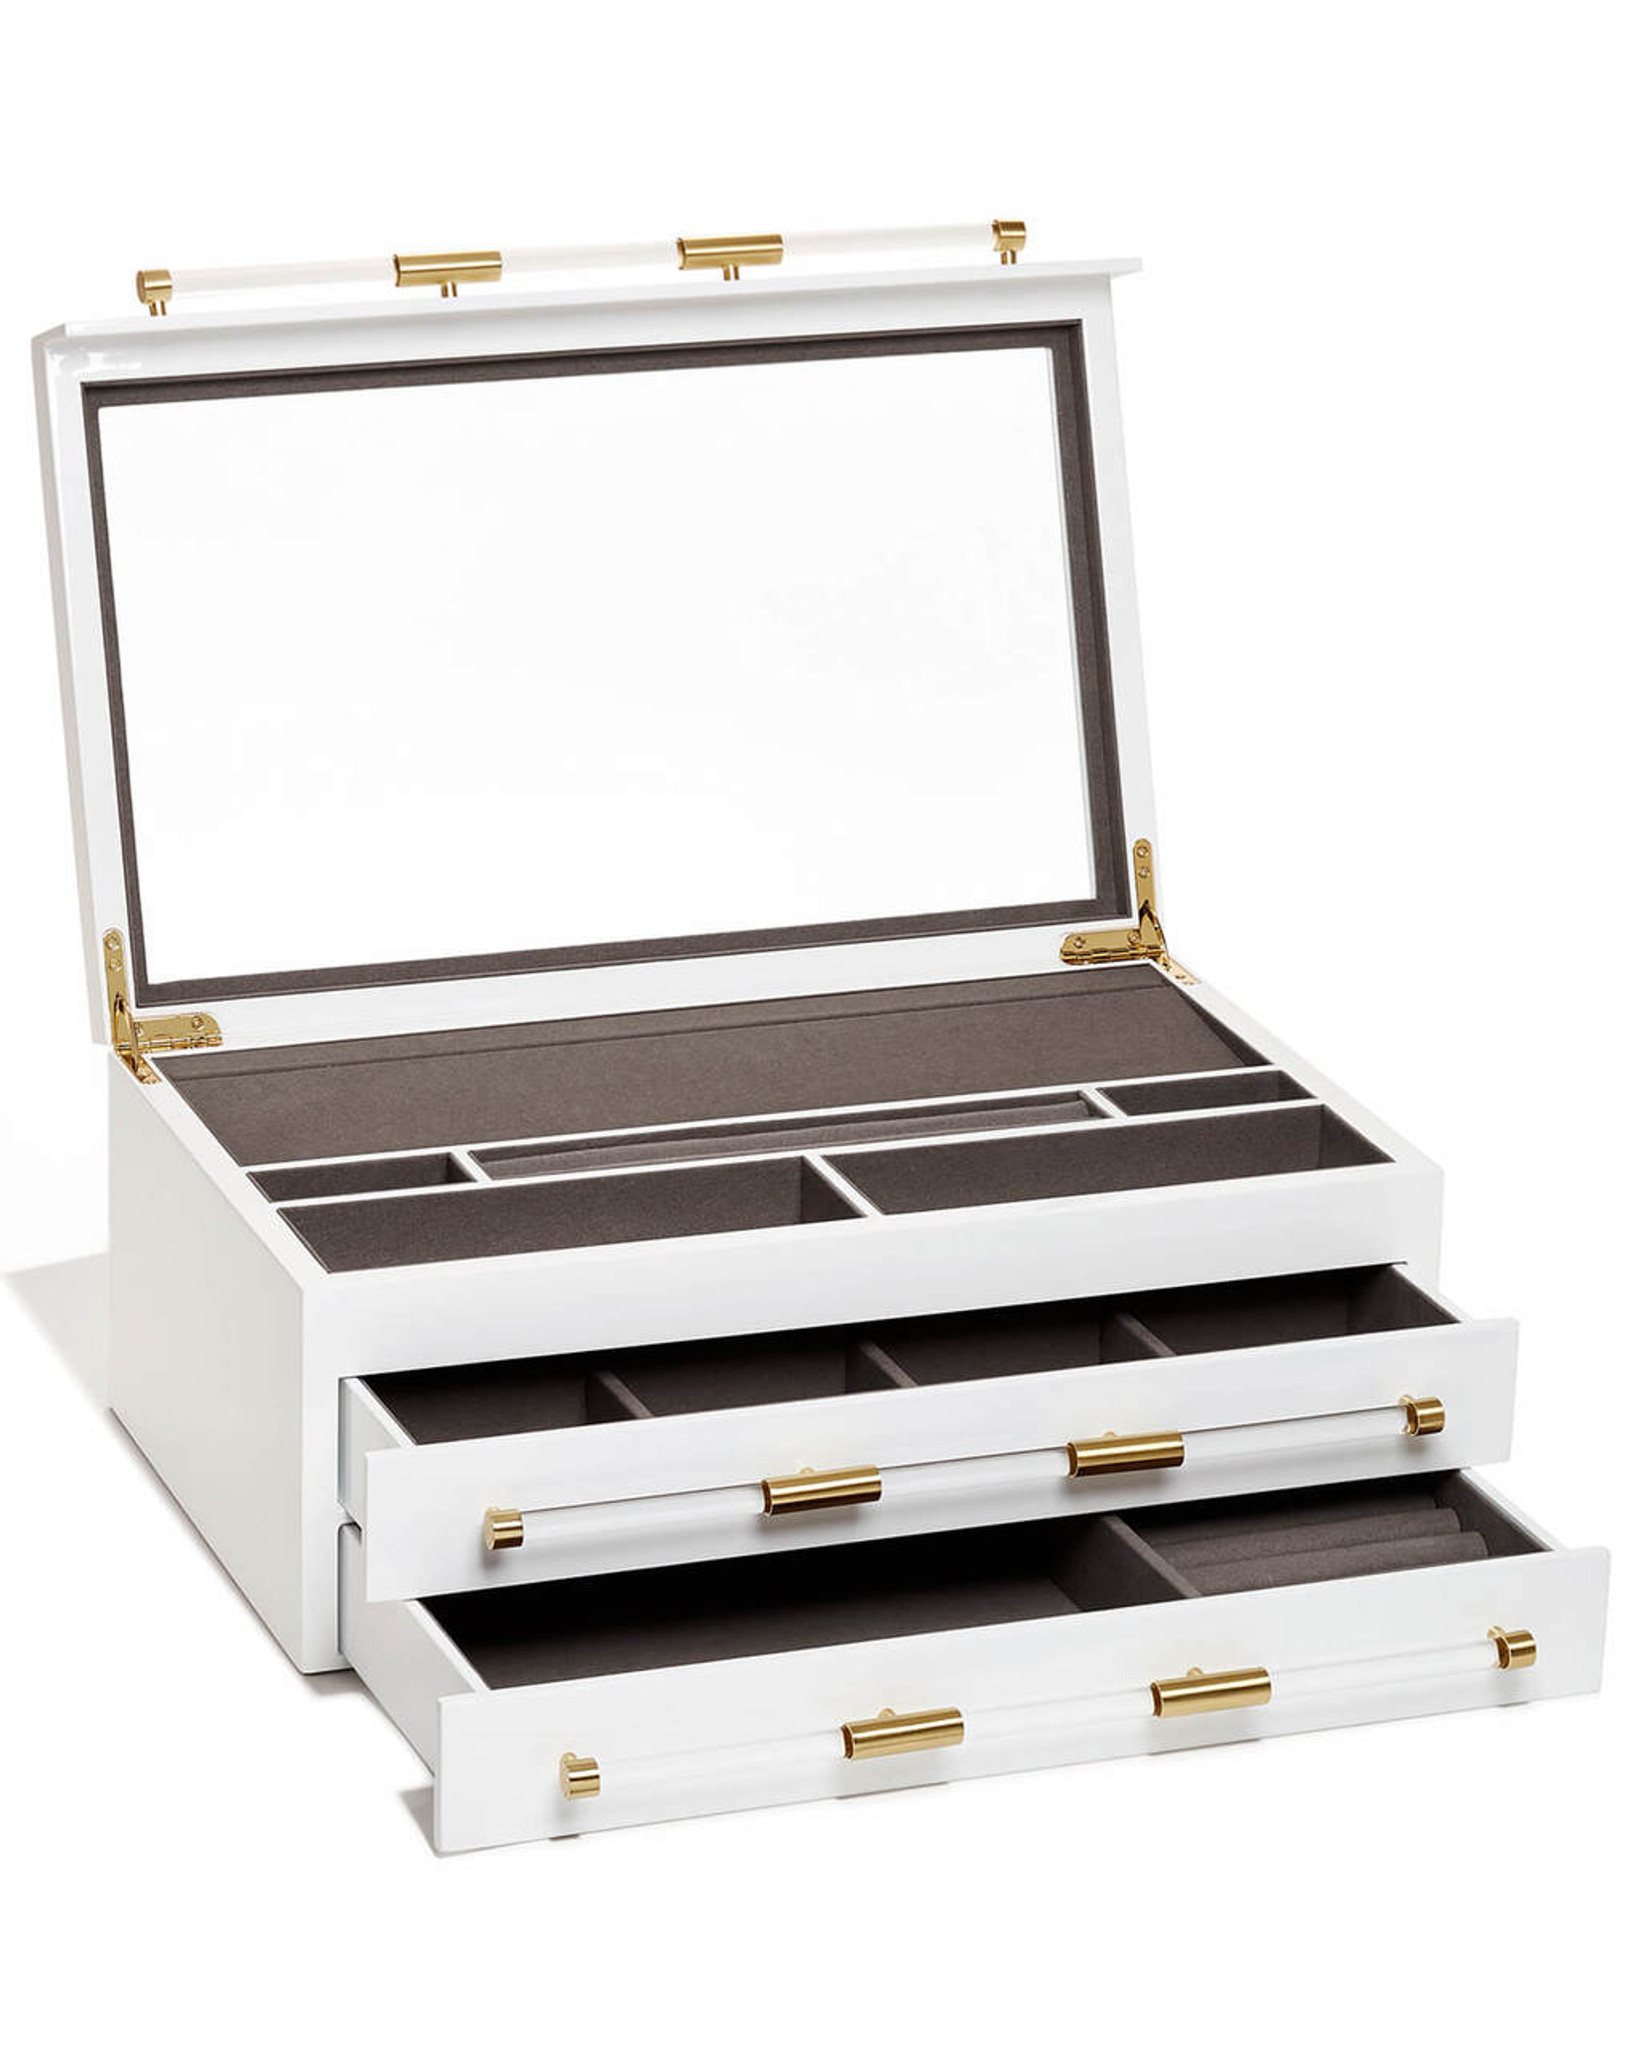 kendra scott jewelry box with acrylic handles large white with drawers storage large mirror chic modern c